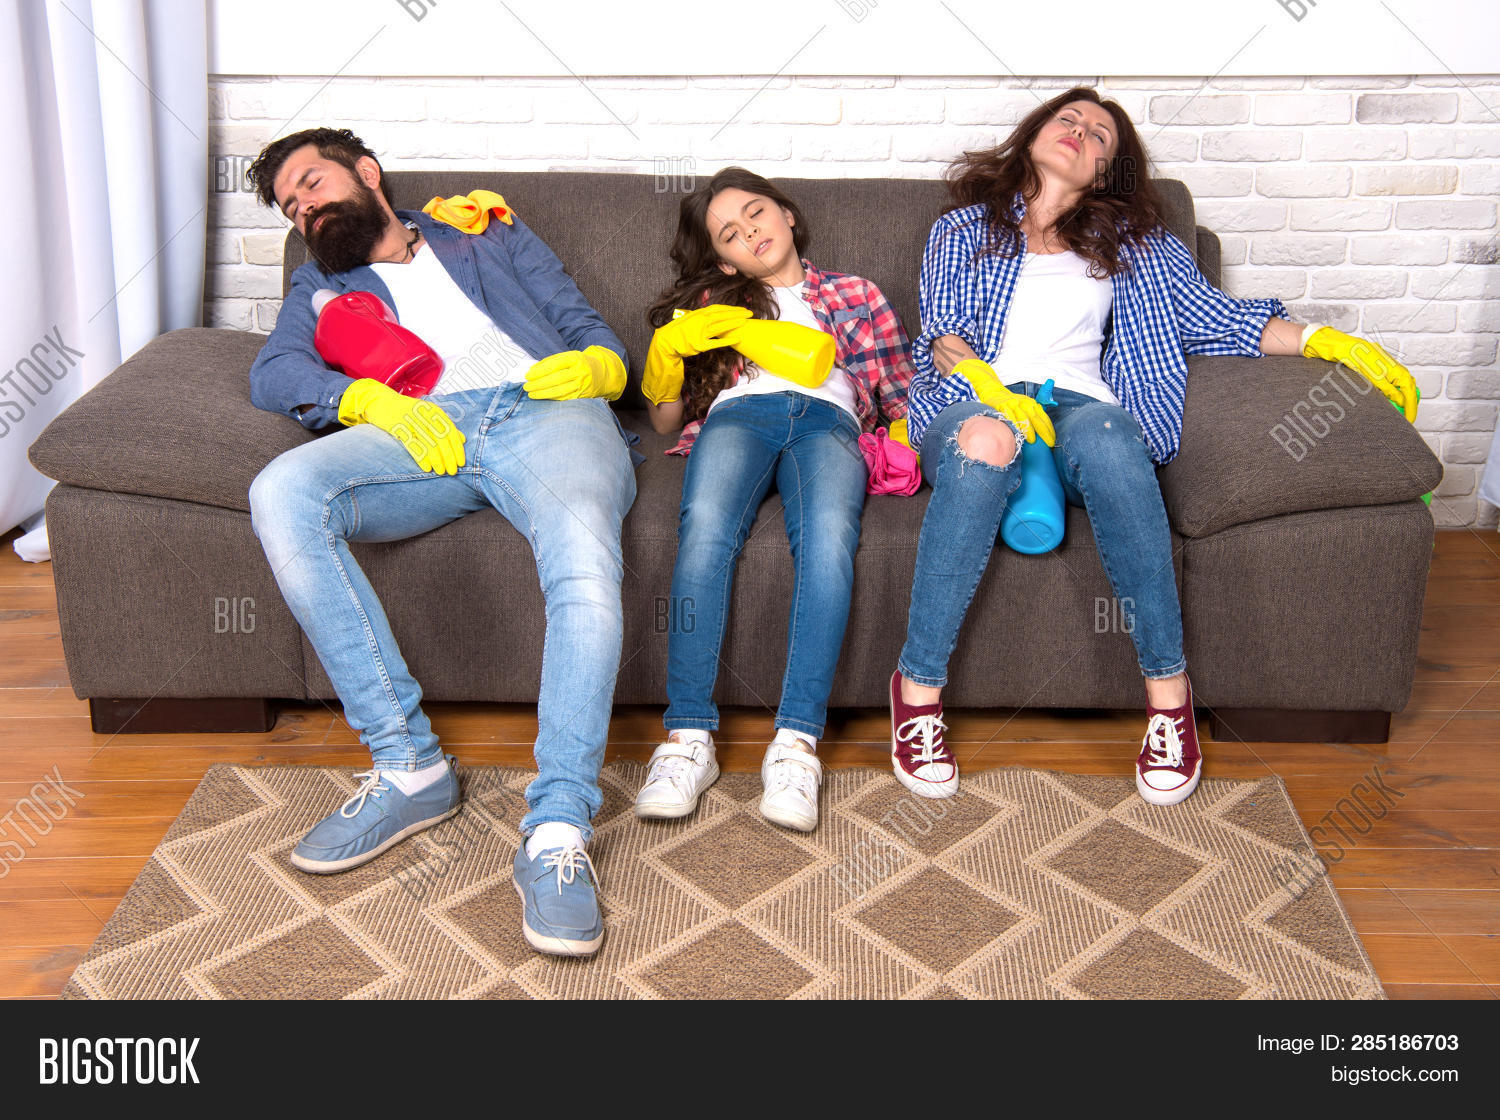 Exhausting Cleaning Day. Family Mom Dad And Daughter With Cleaning Supplies Sit On Couch. Family Car